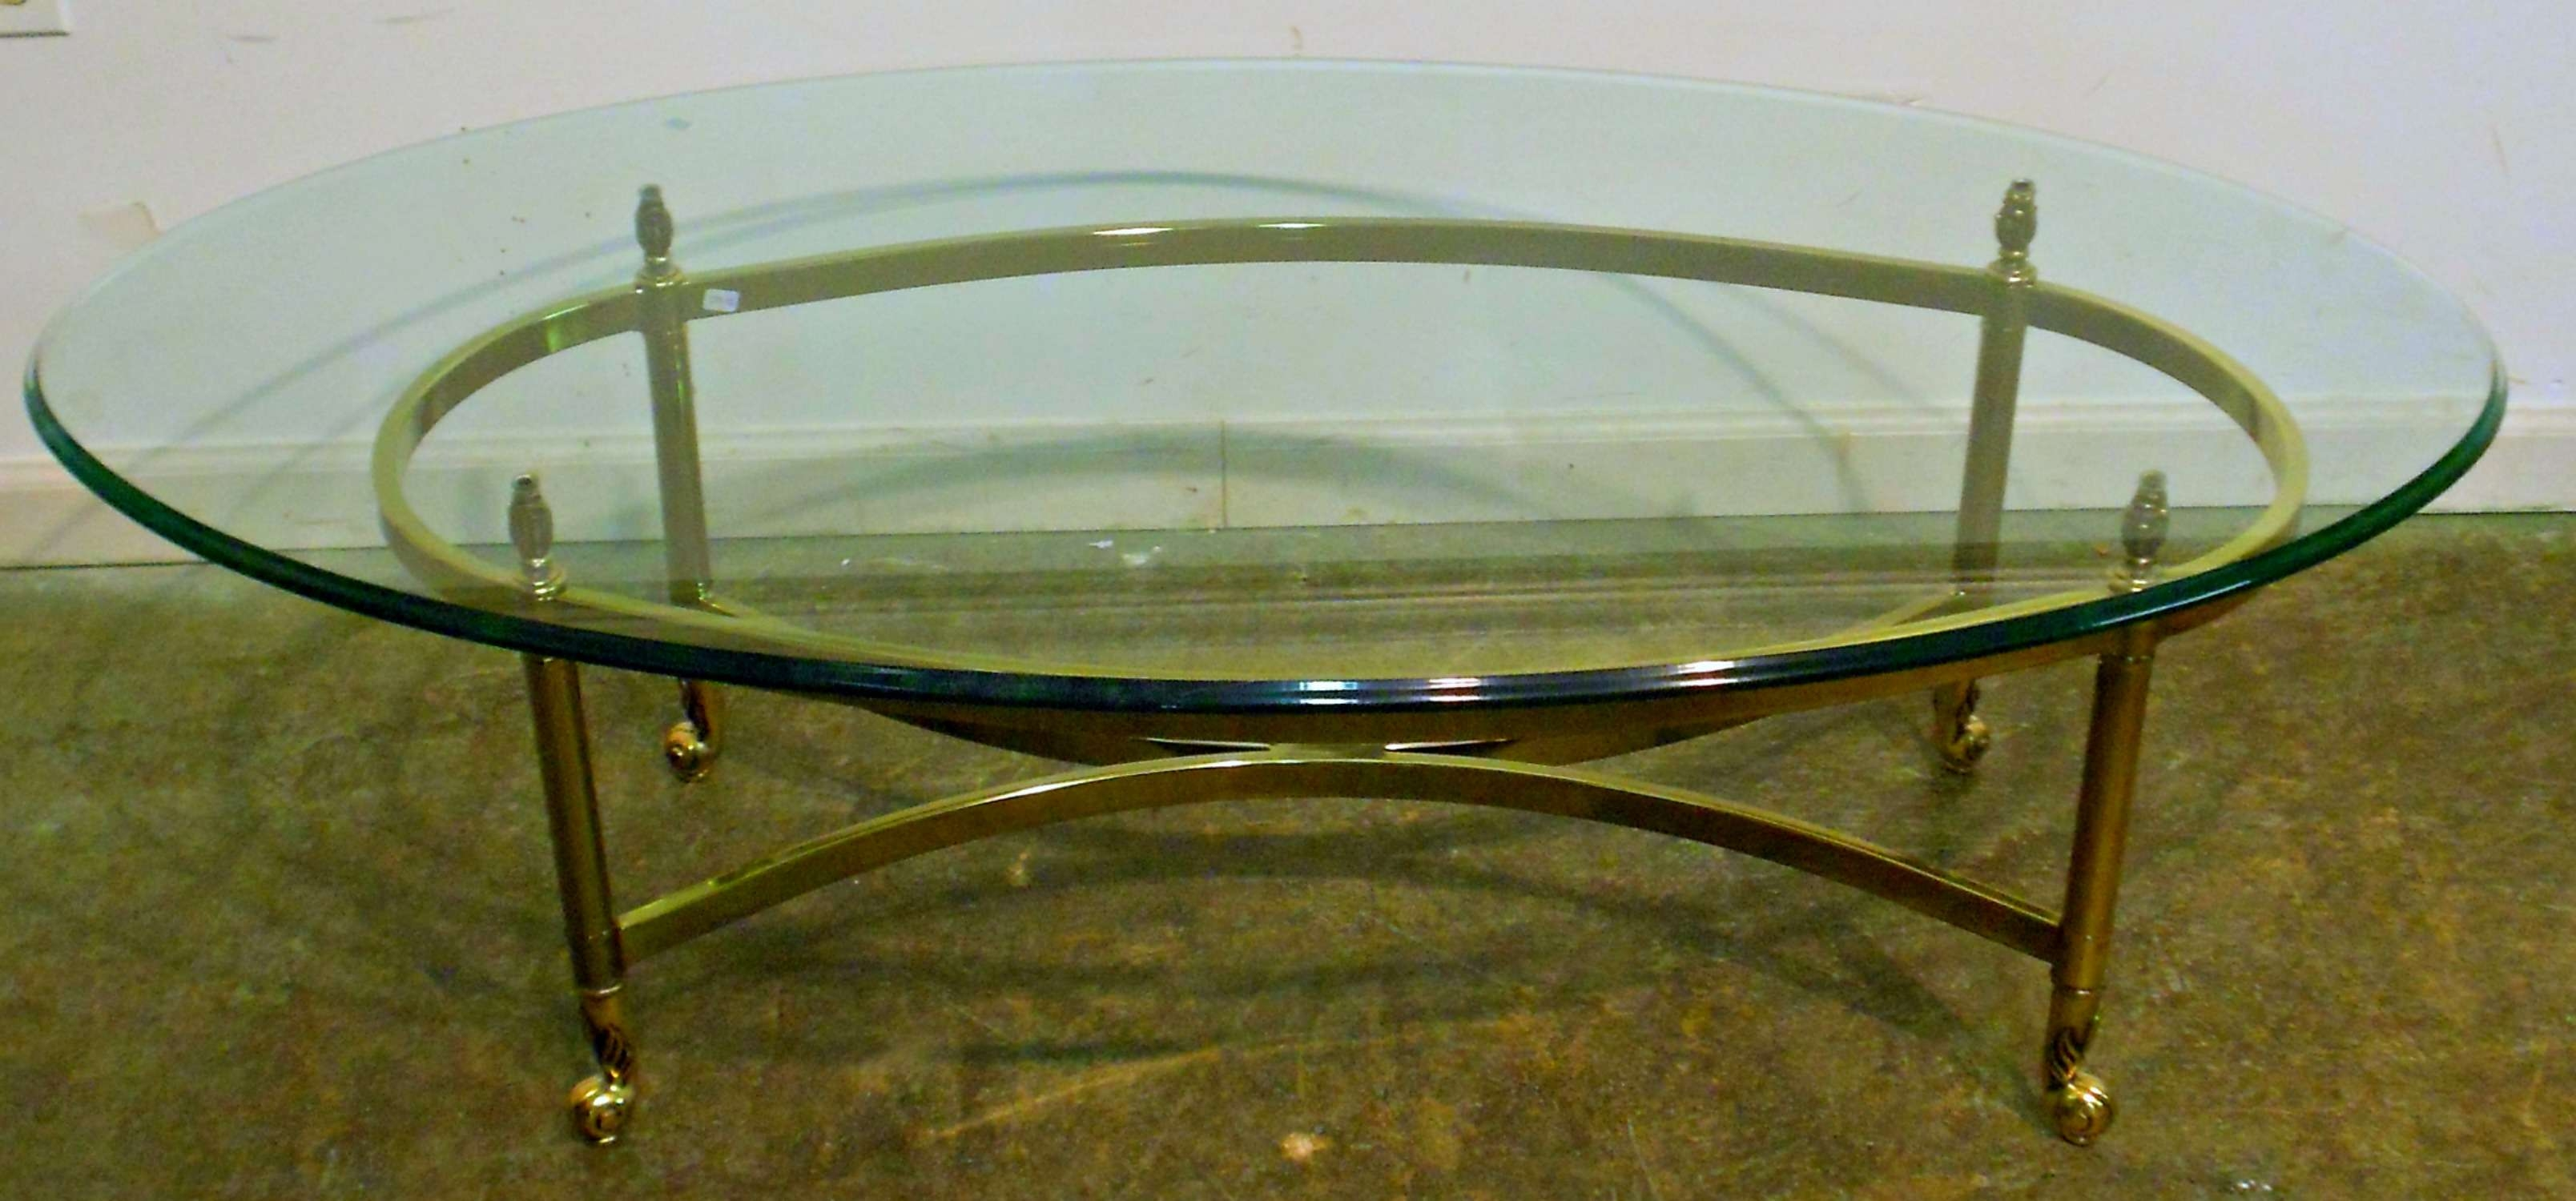 Decorations : Furniture Vintage Retro Style Coffee Table With With Latest Vintage Glass Coffee Tables (View 5 of 20)